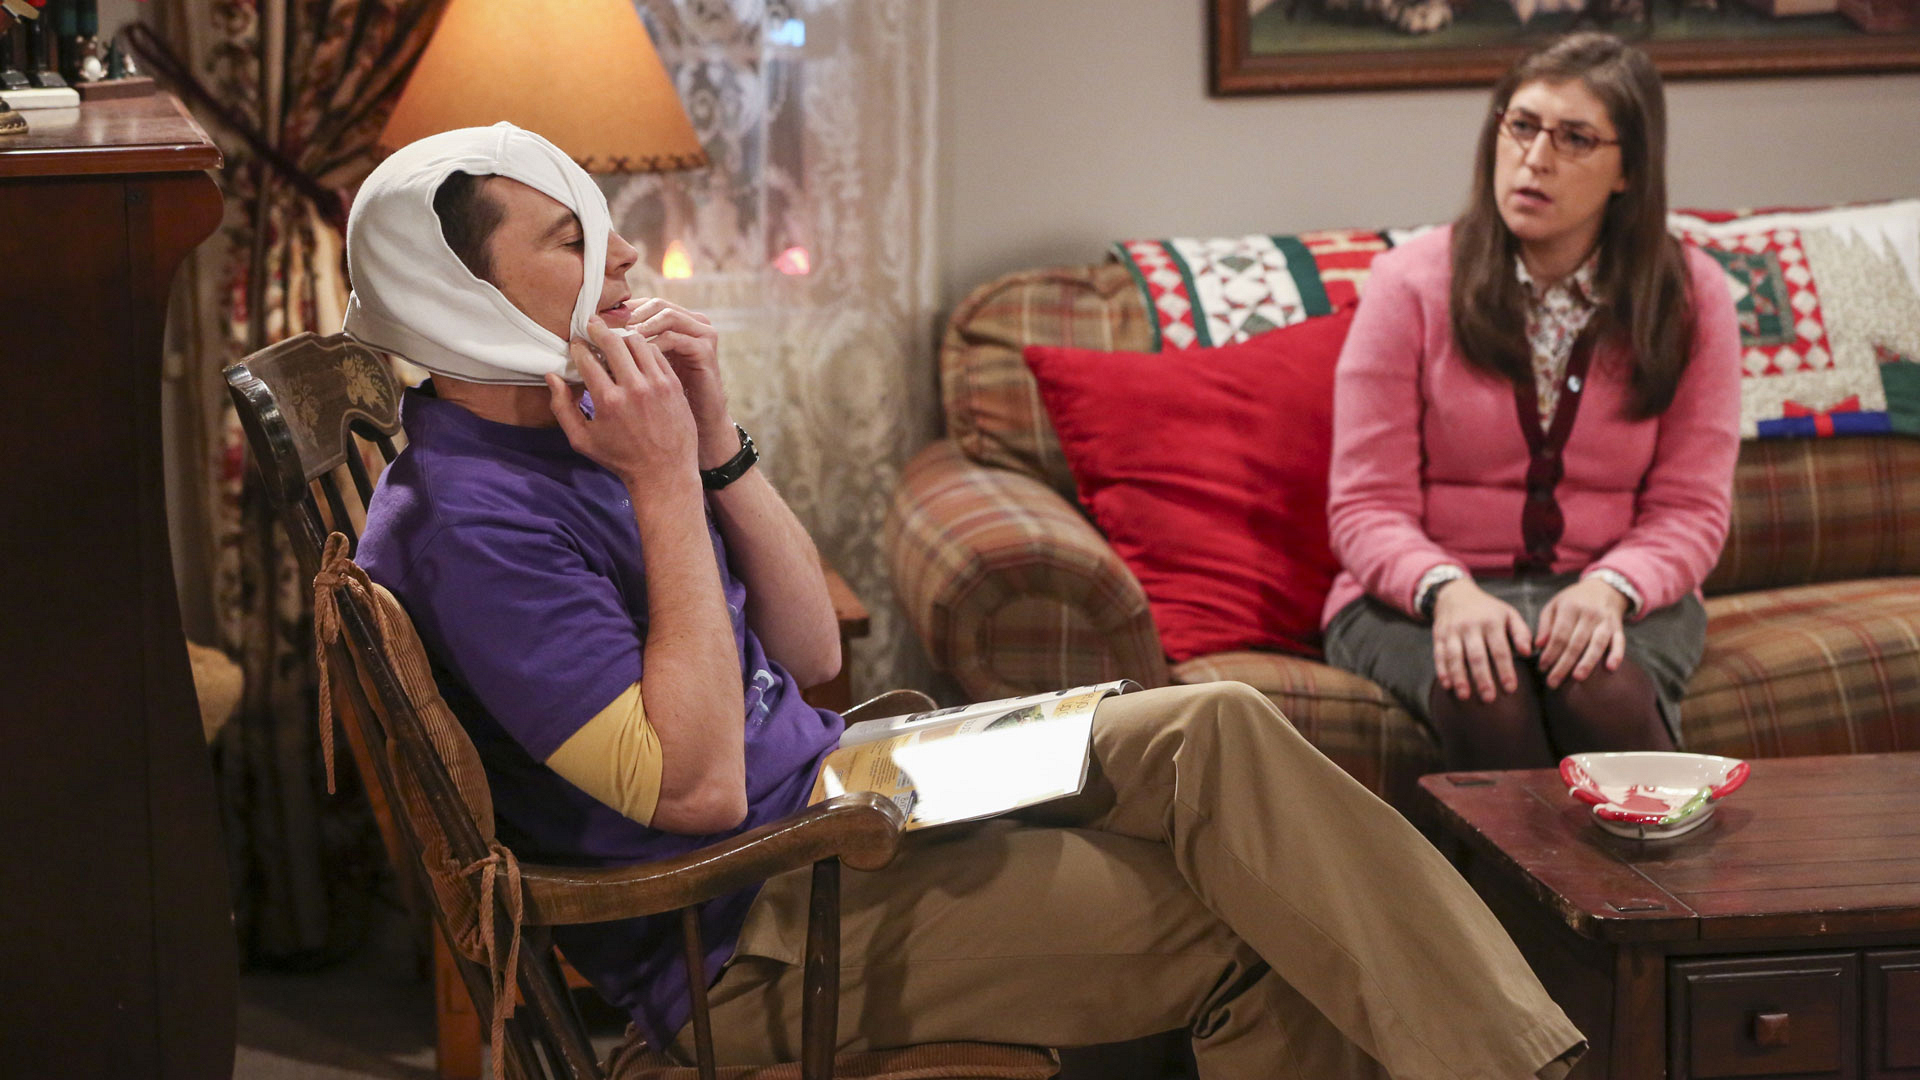 Sheldon lets Amy know what's really on his mind.